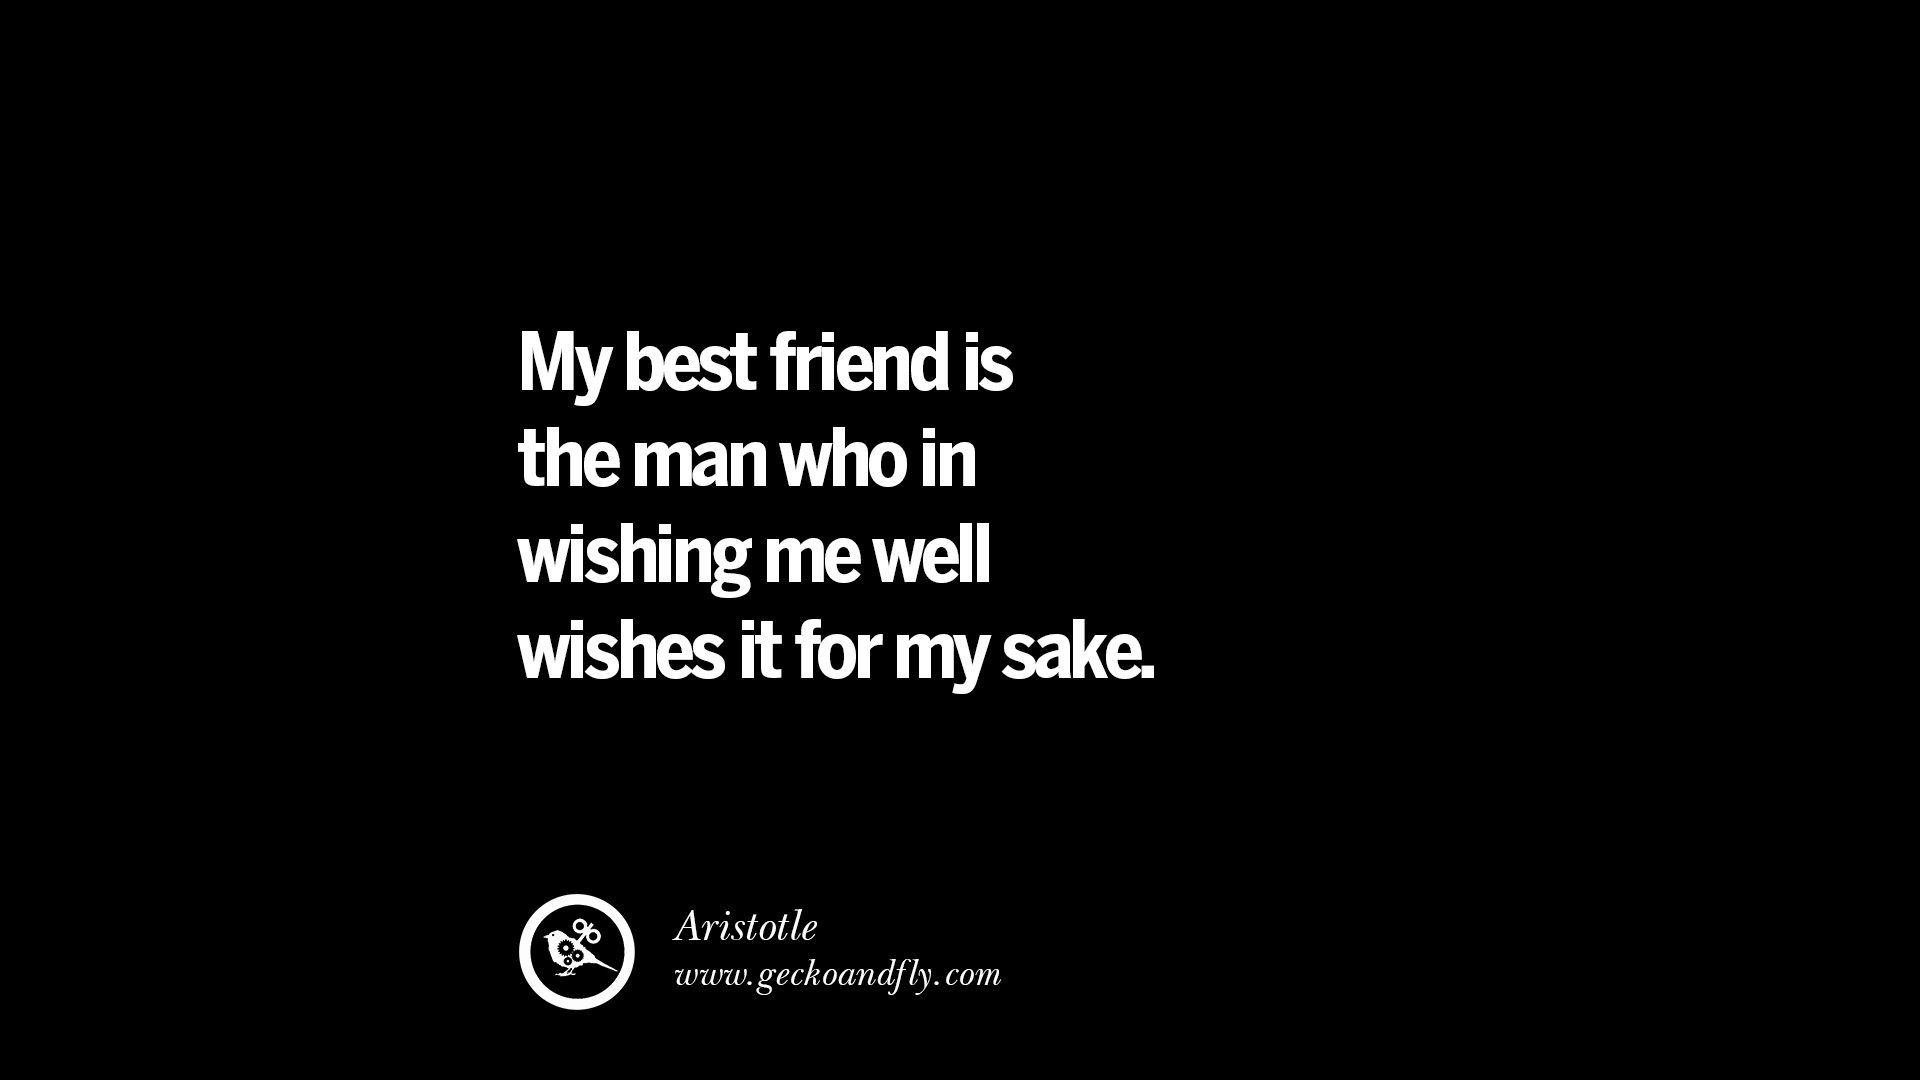 Quotes About Friendship Images 20 Amazing Quotes About Friendship Love And Friends  Geckoandfly 2018